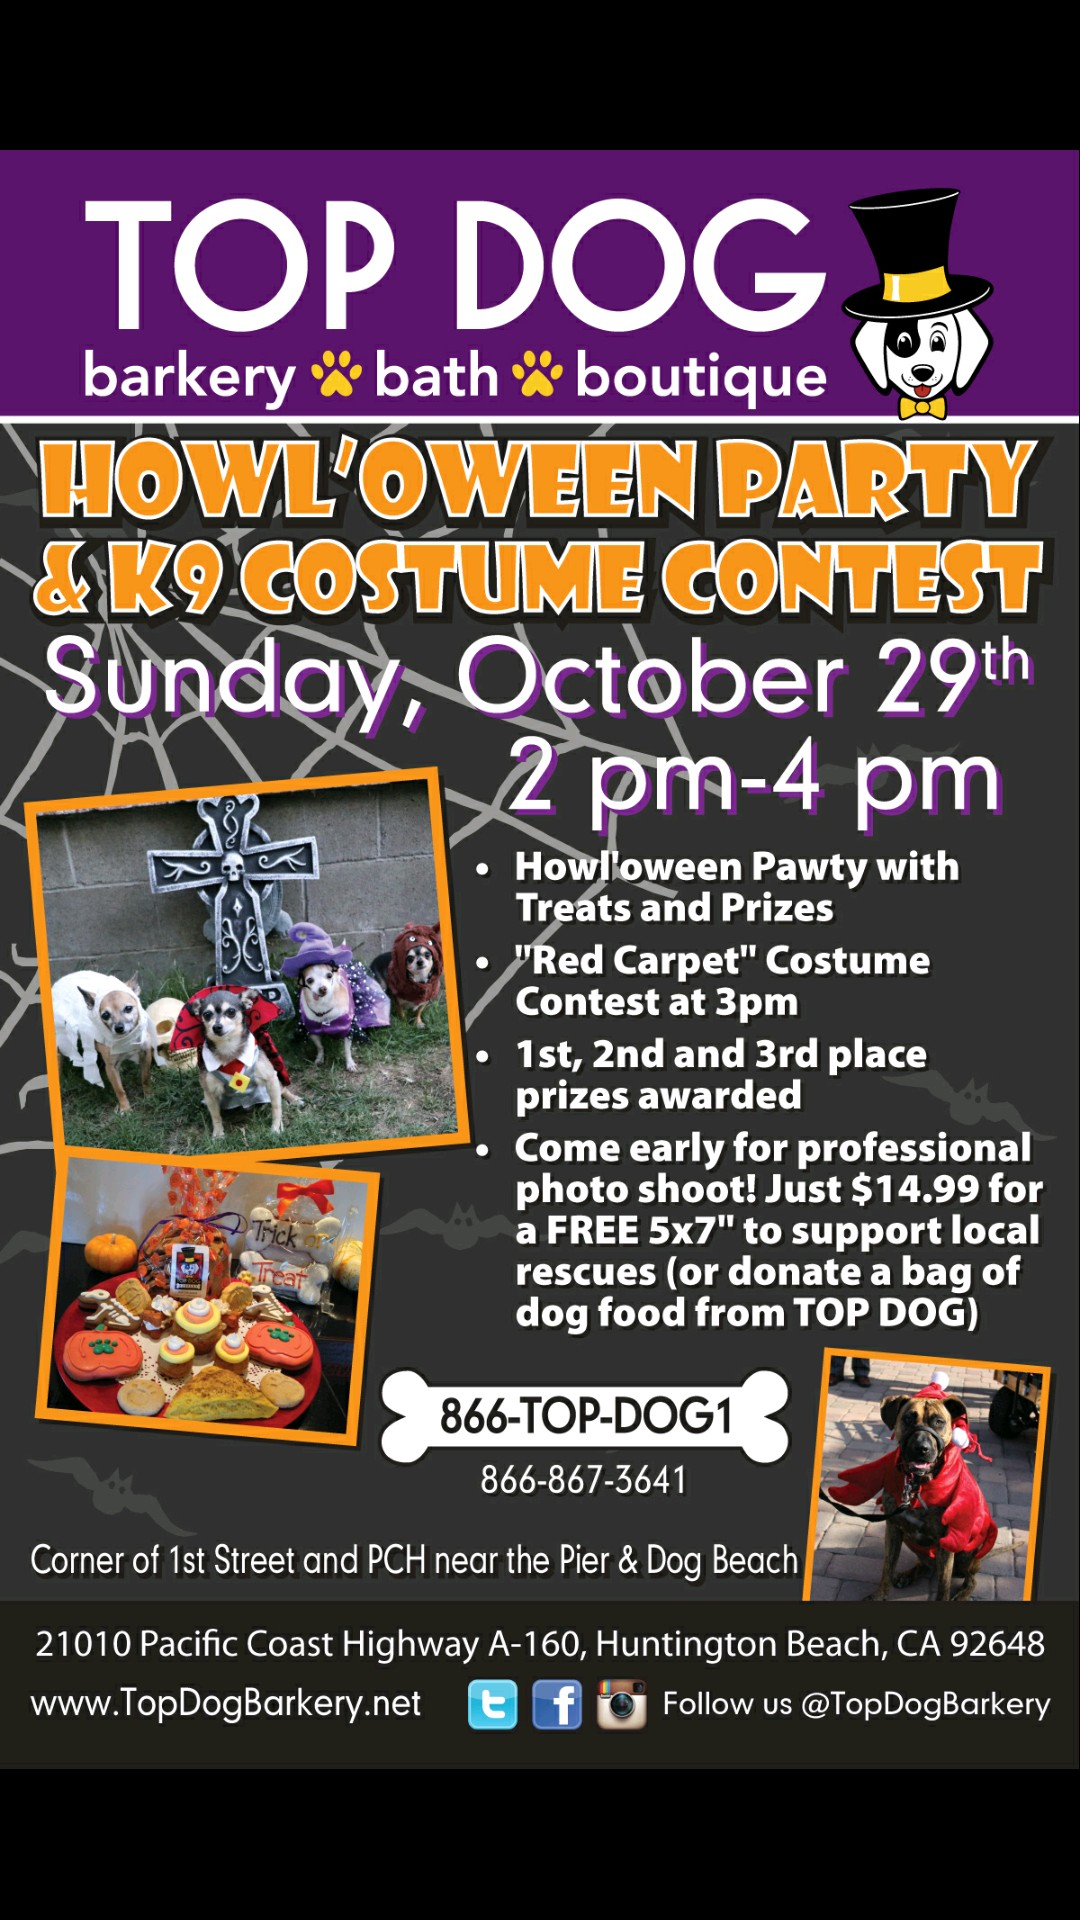 costume contest, dog party, howloween